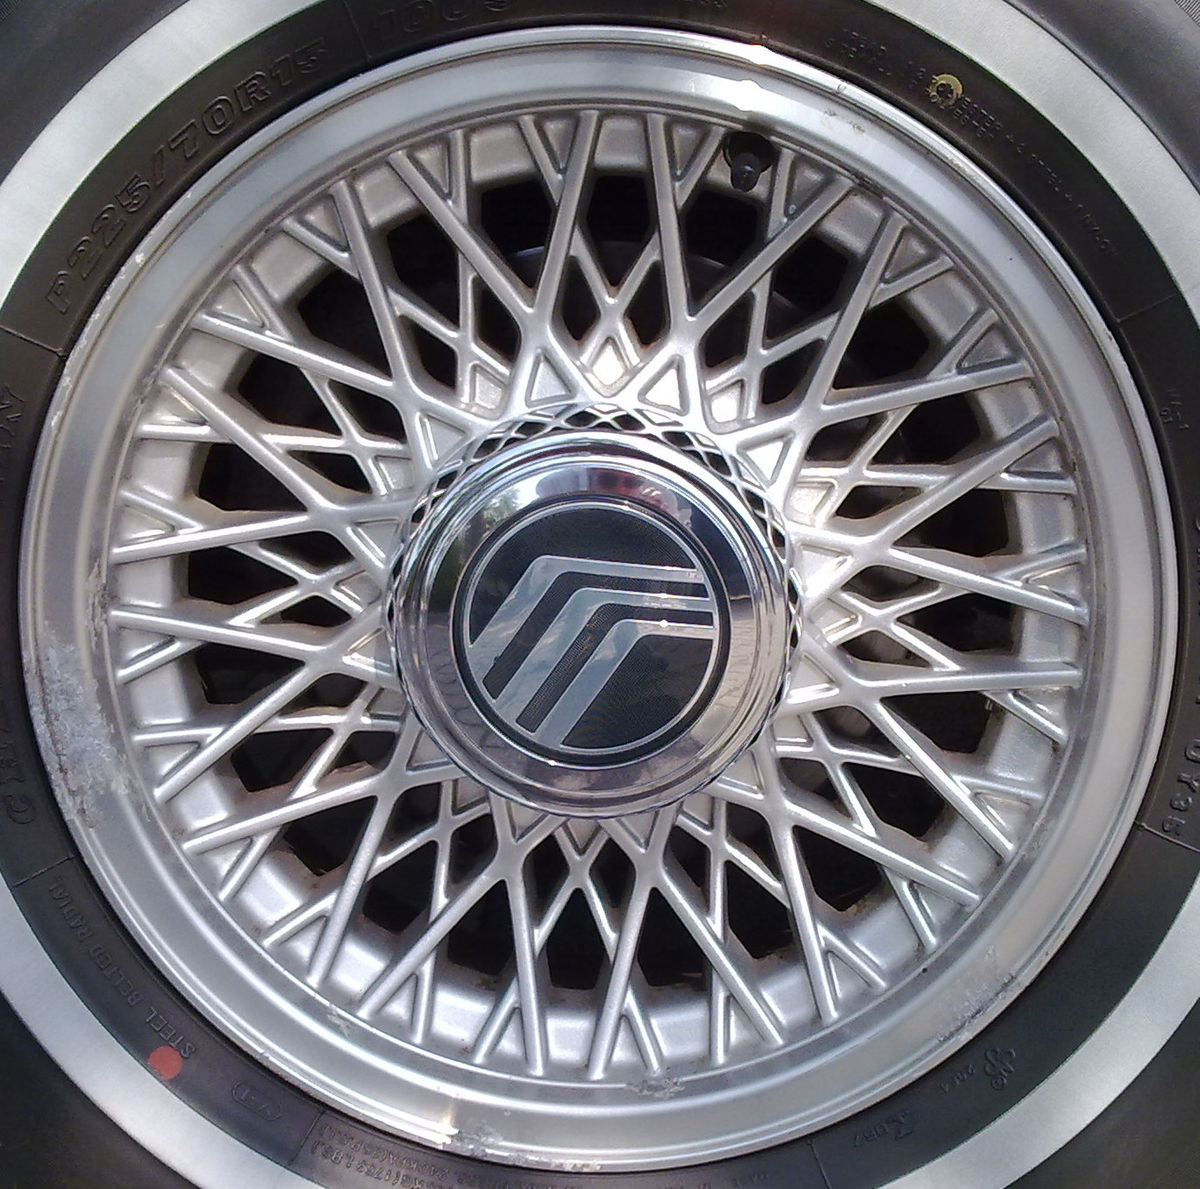 Alloy Wheel Wikipedia